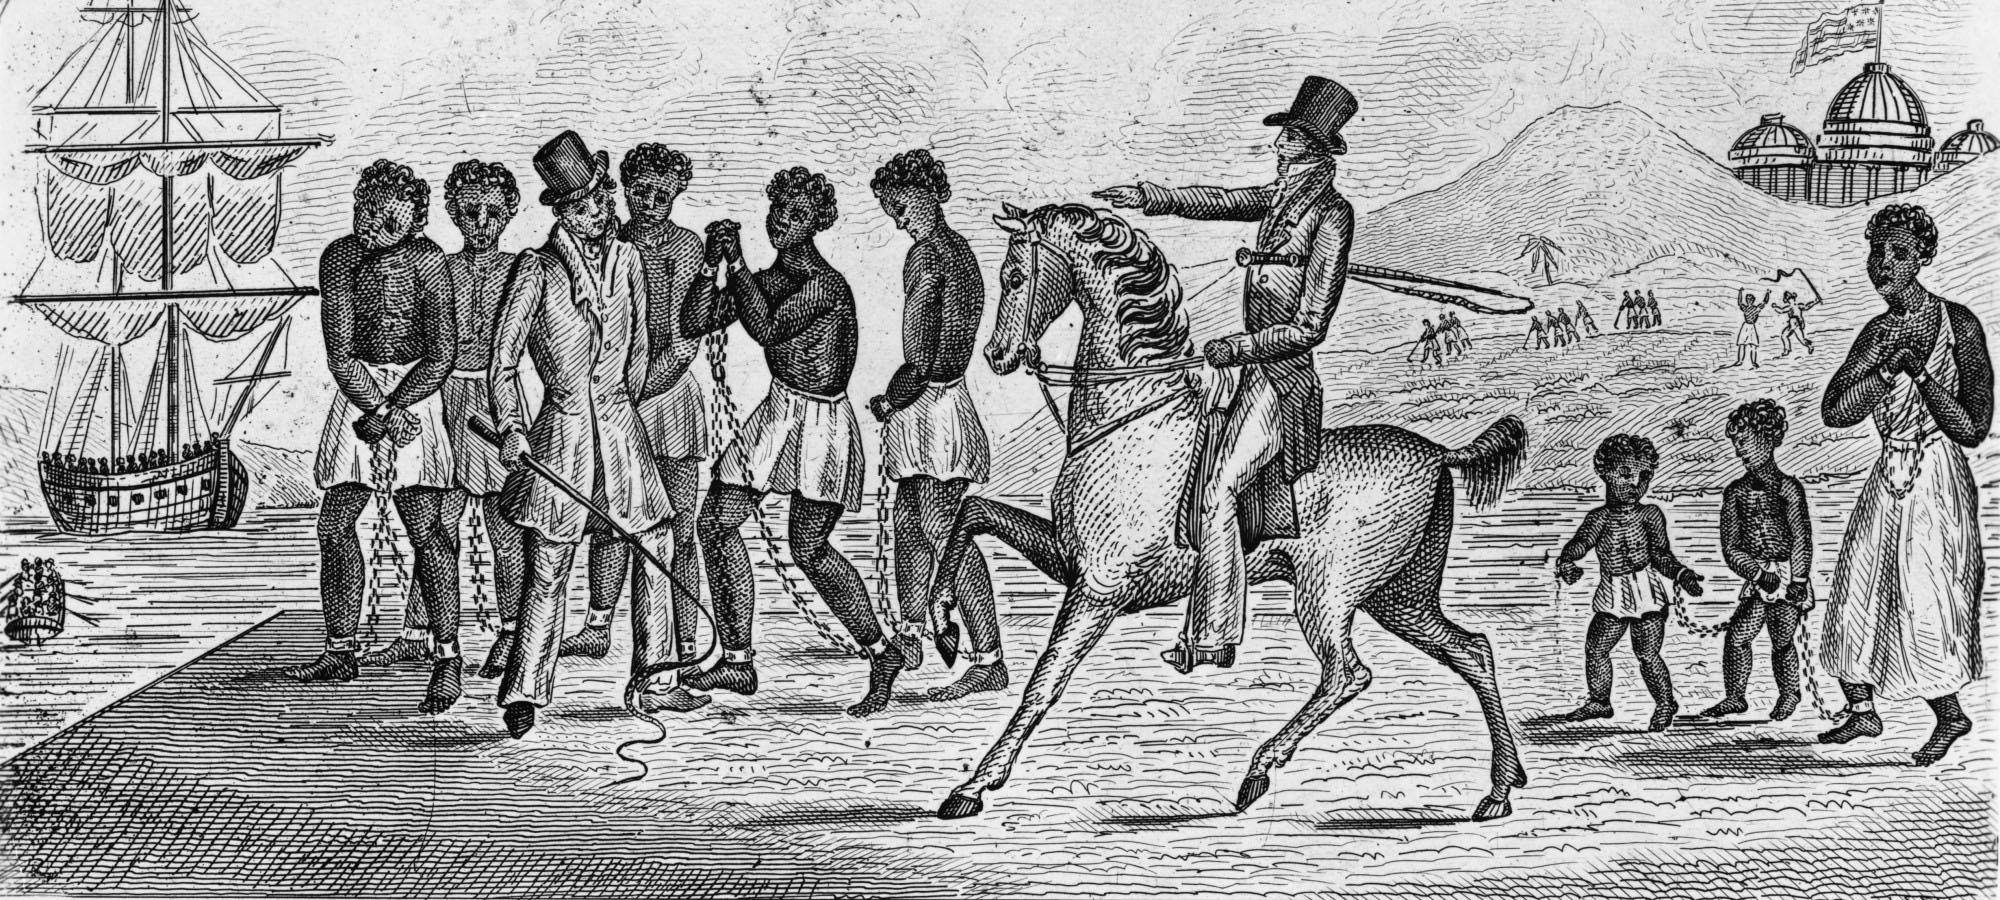 unpaid labor of african slaves boosted americas economy Port manteaux churns out silly new words when you feed it an idea or two enter a word (or two) above and you'll get back a bunch of portmanteaux created by jamming together words that are conceptually related to your inputs.